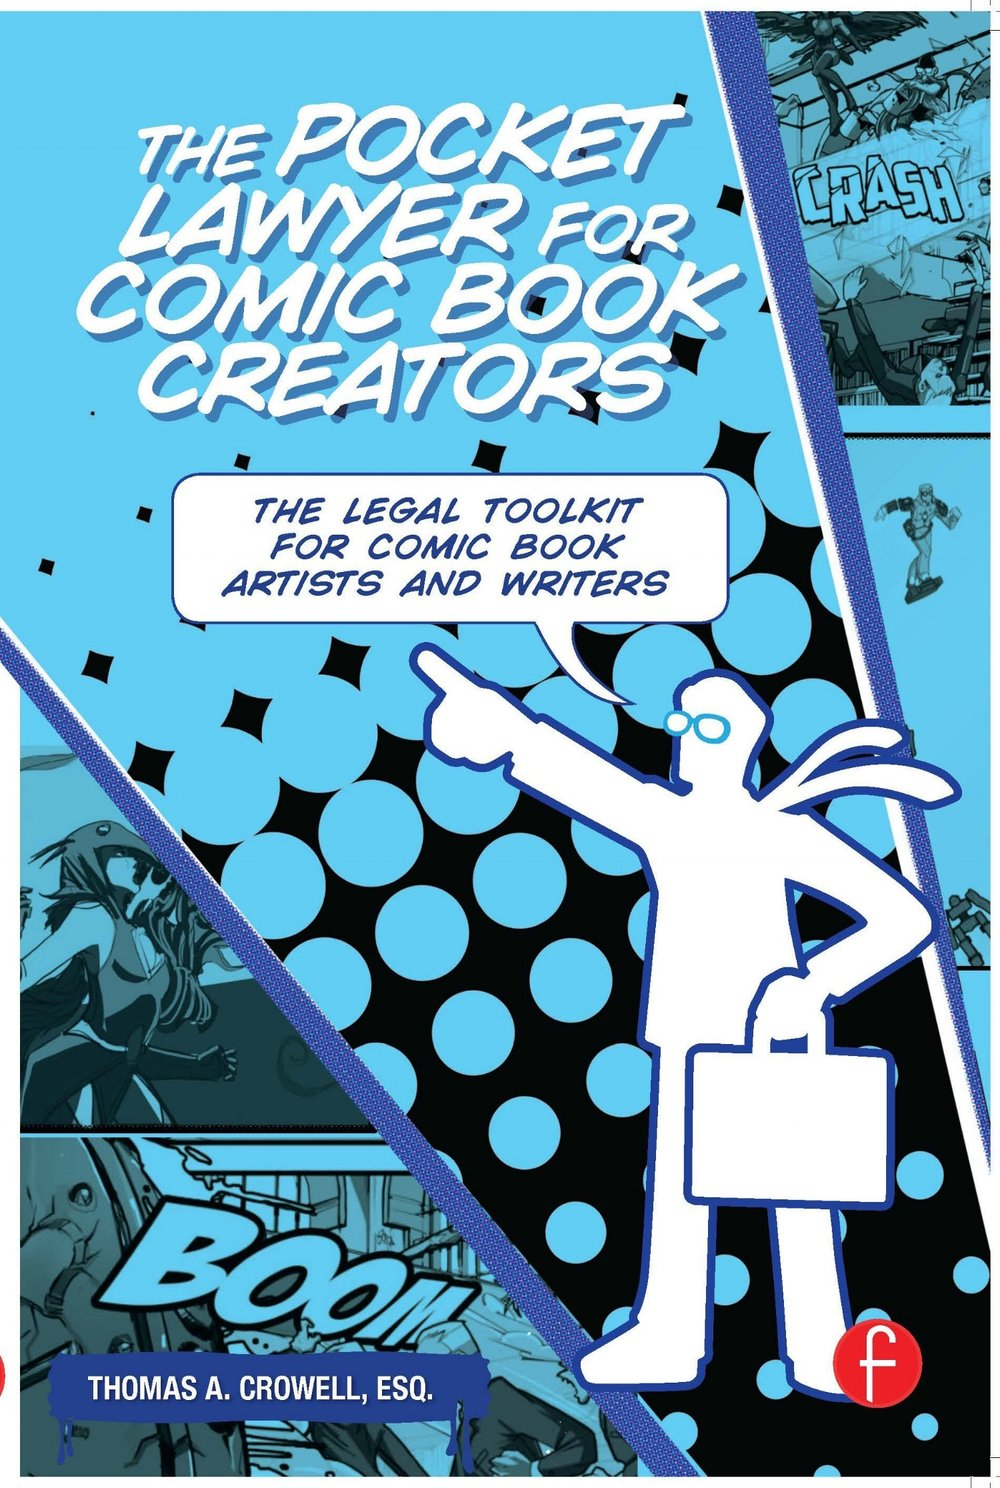 The Pocket Lawyer for Comic Book Creators - The Pocket Lawyer for Comic Book Creators is the FIRST dedicated legal guide to the comic book industry. It is designed to help emerging artists and veteran professionals in the comic book industry build a solid foundation of business and communication practices that they need to thrive in today's ever-changing, uncertain world of indie comics. Readers will learn to protect their copyrights, negotiate publishing deals, hire artists so everyone wins, and learn the ins and outs of key contracts with this helpful resource.